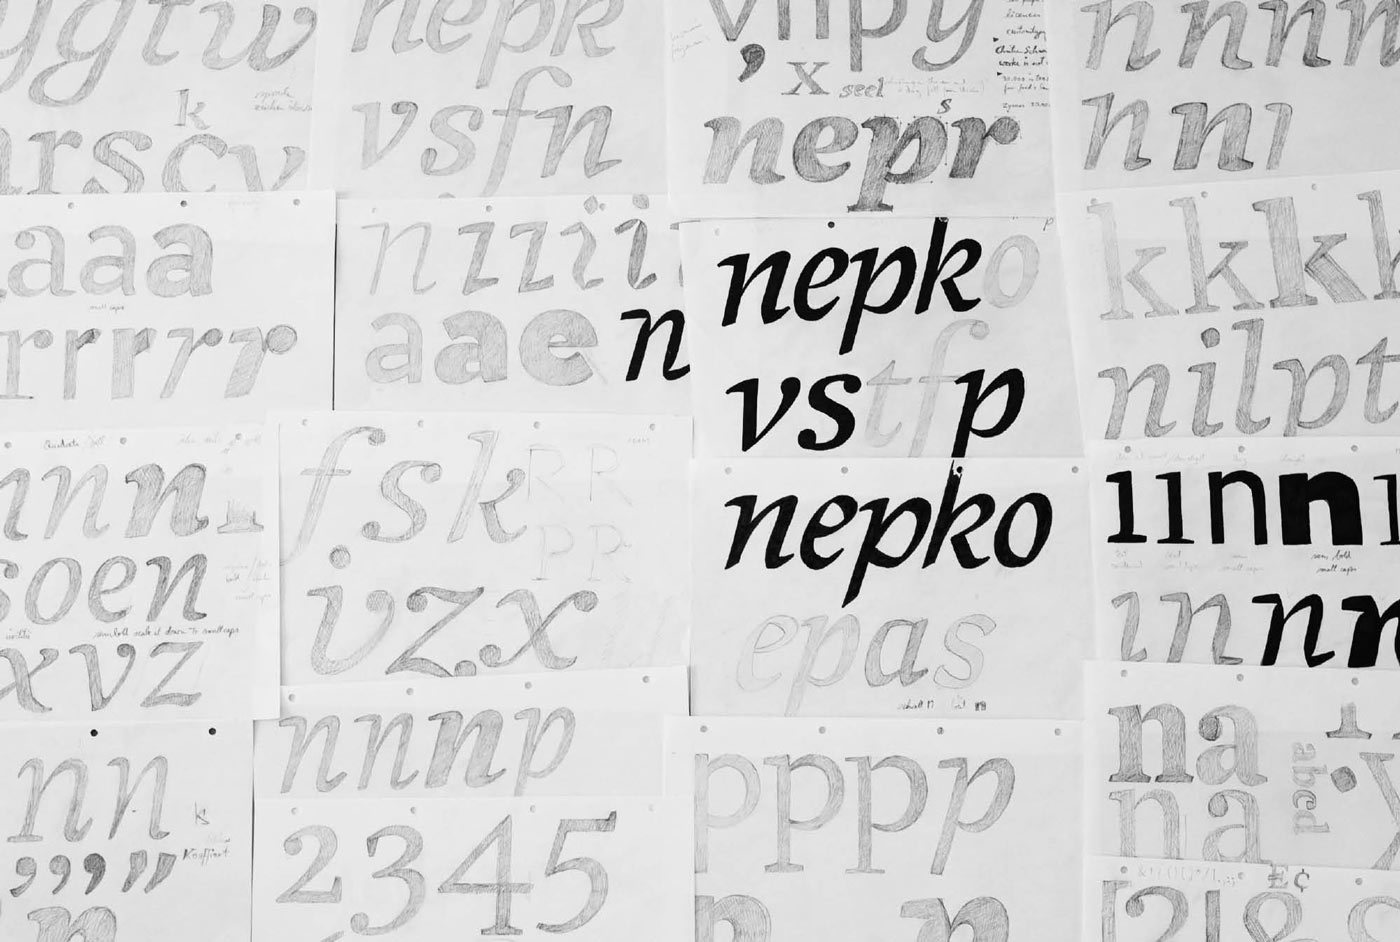 Meret Pro Making Of Newspaper Magazine Editorial Typeface Typemates 25